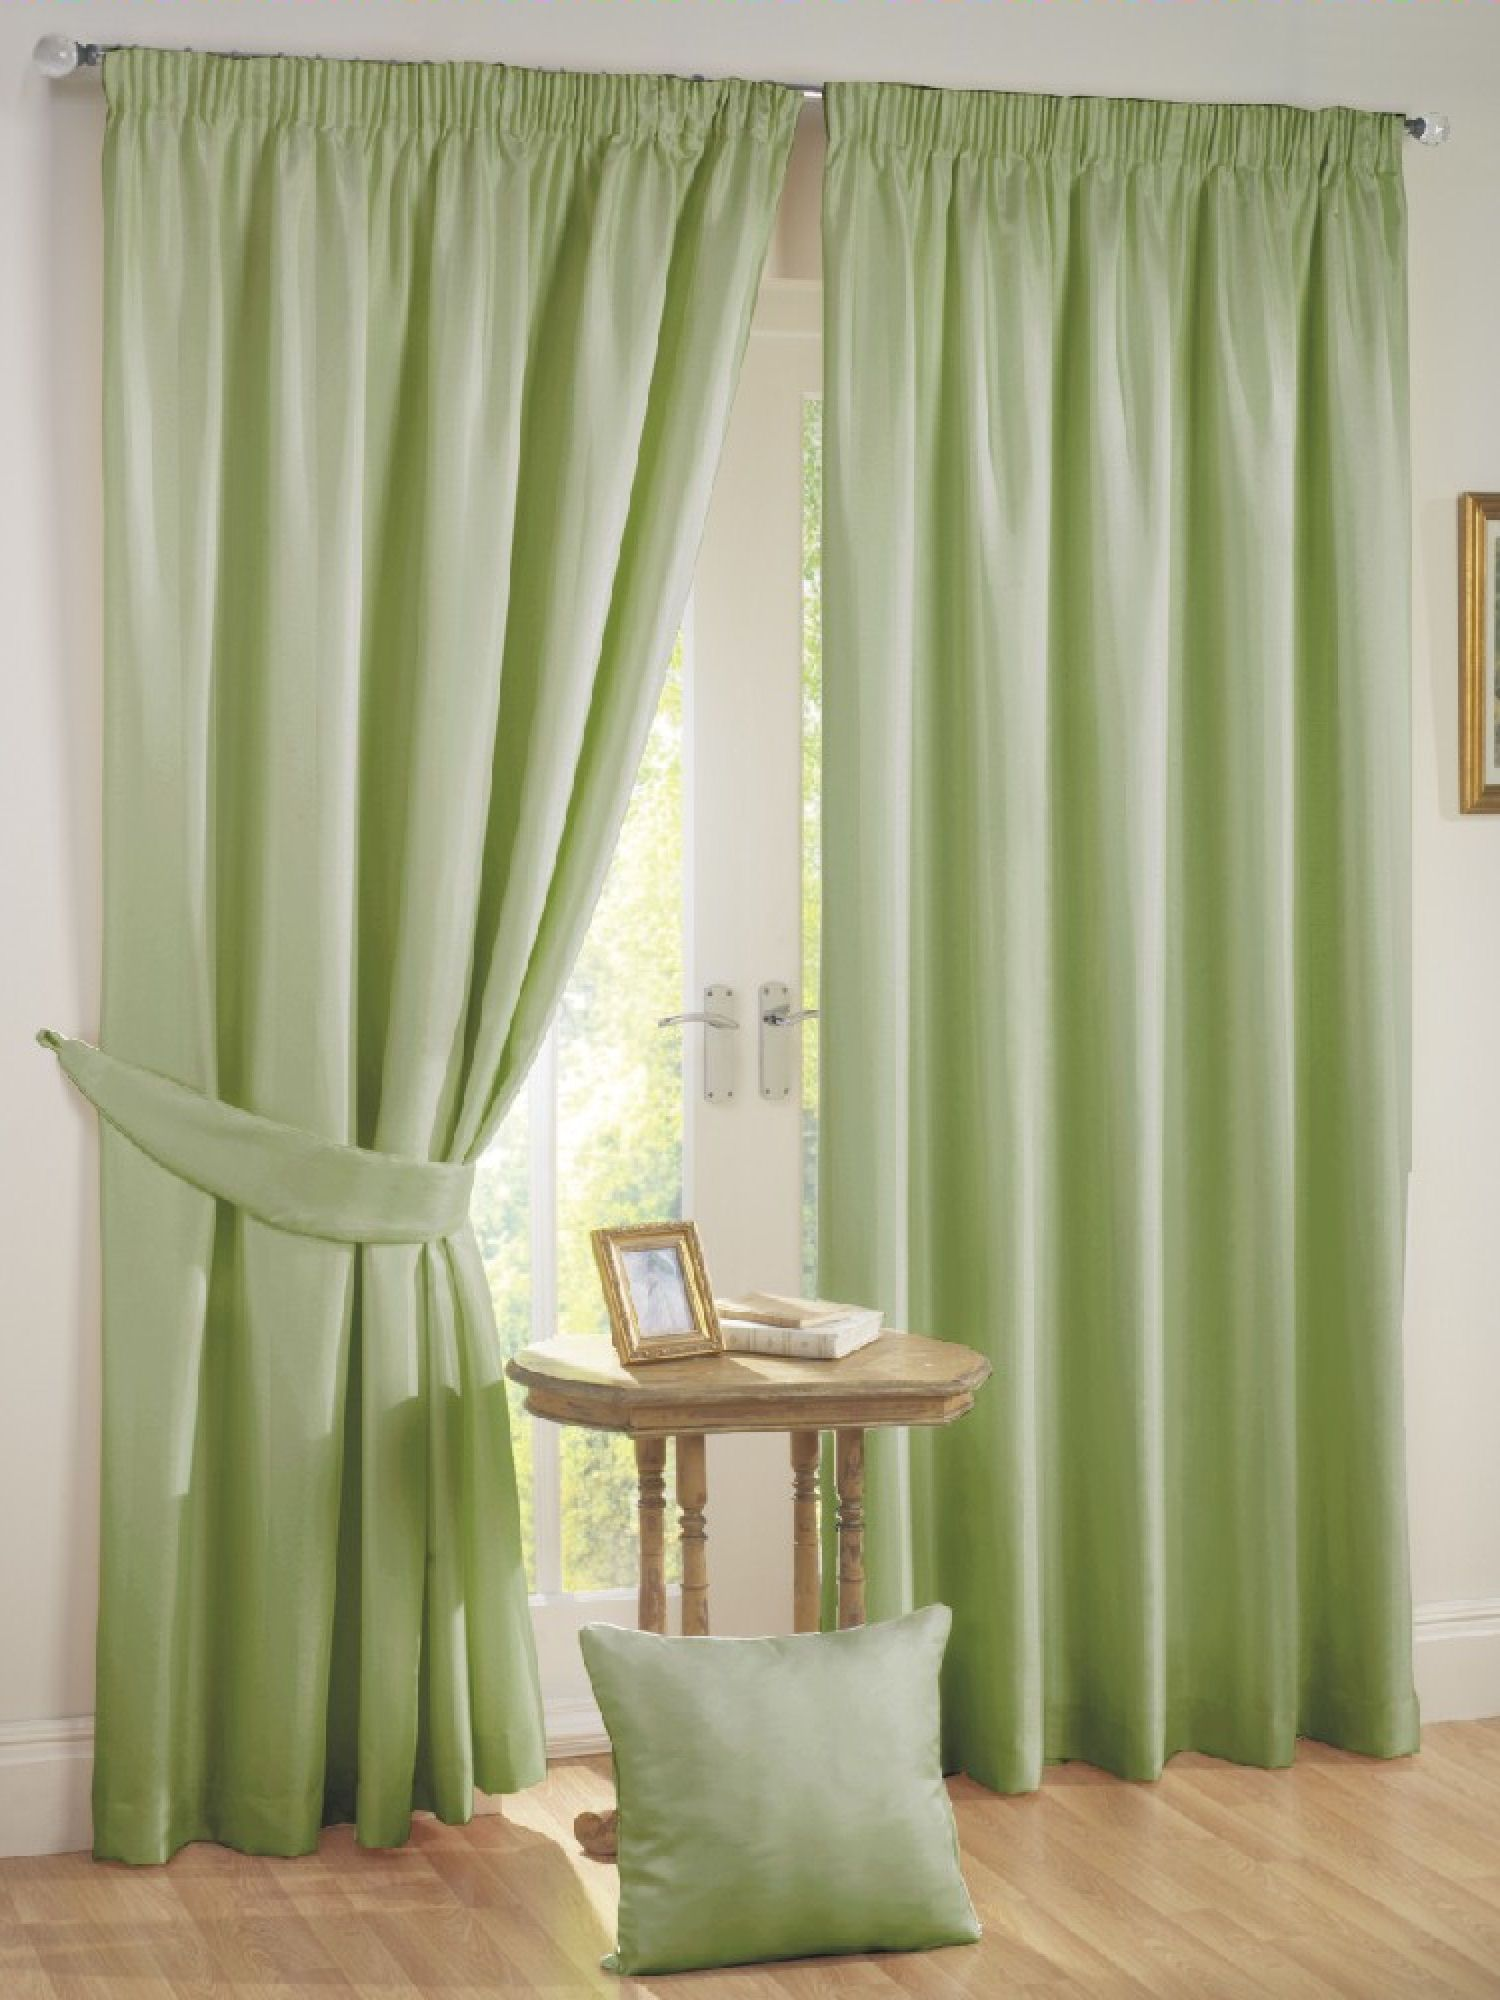 Rectella sunset green range